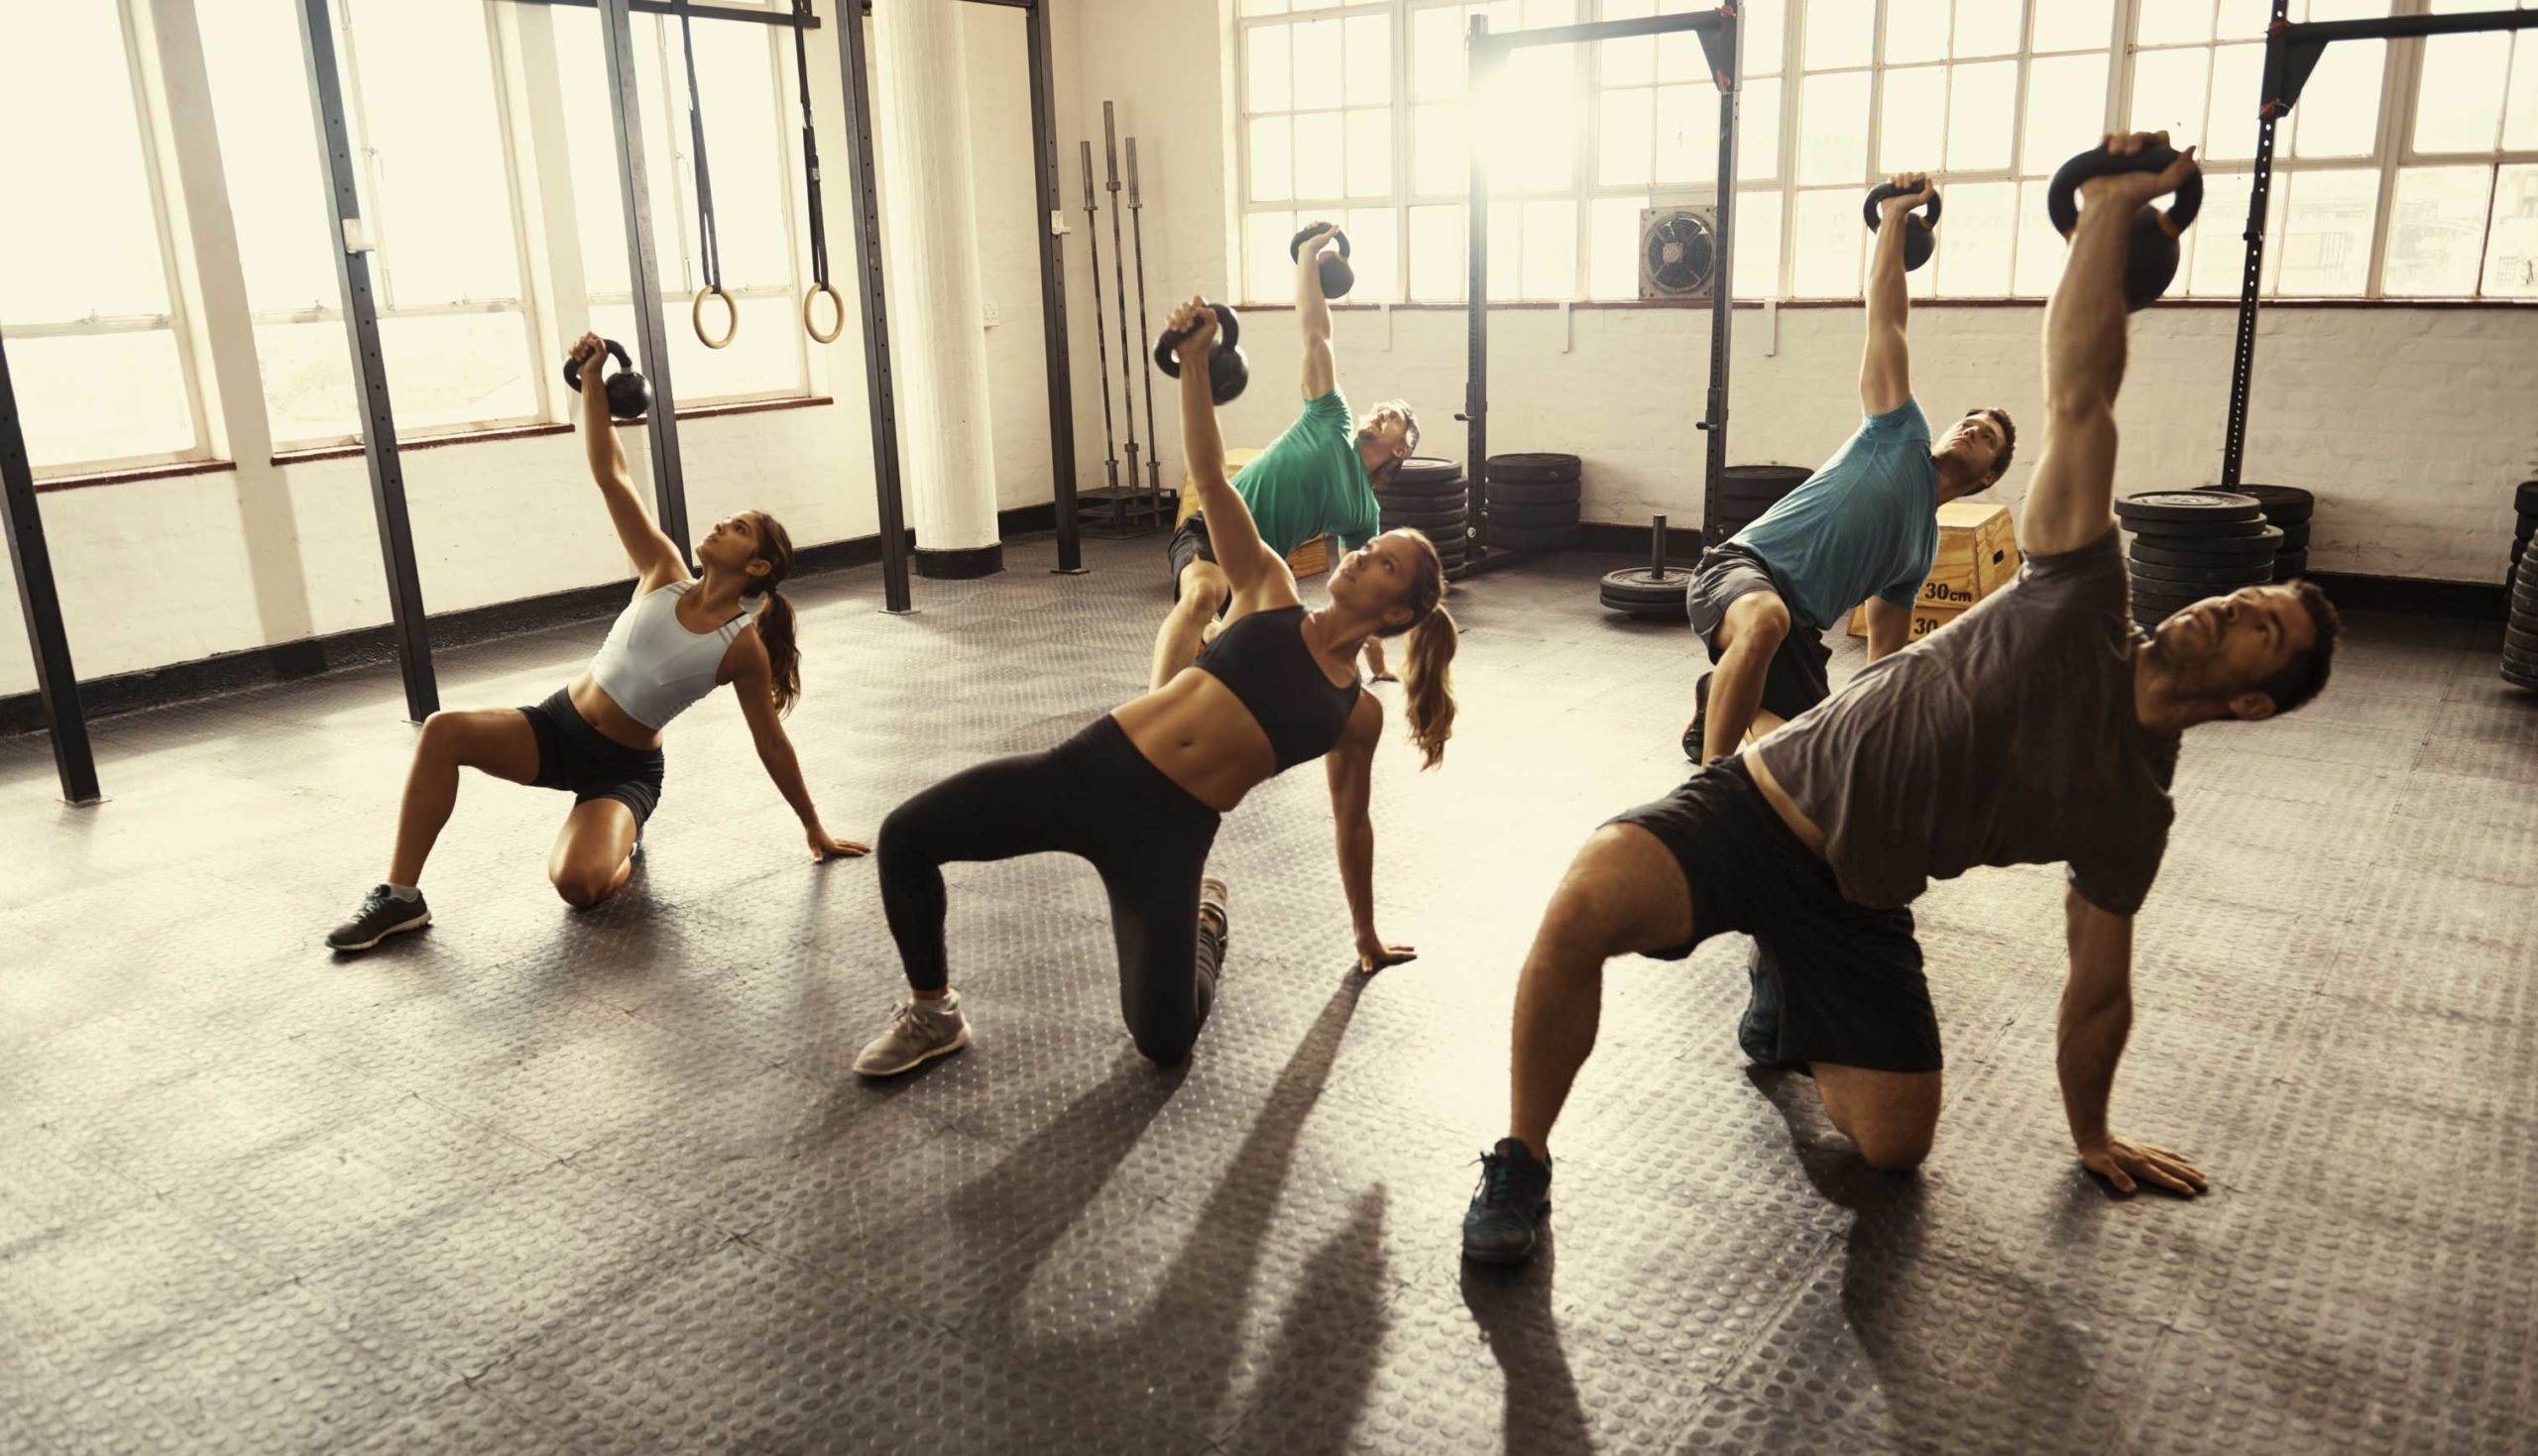 Group Exercise Might Be More Effective Than Individual Exercising